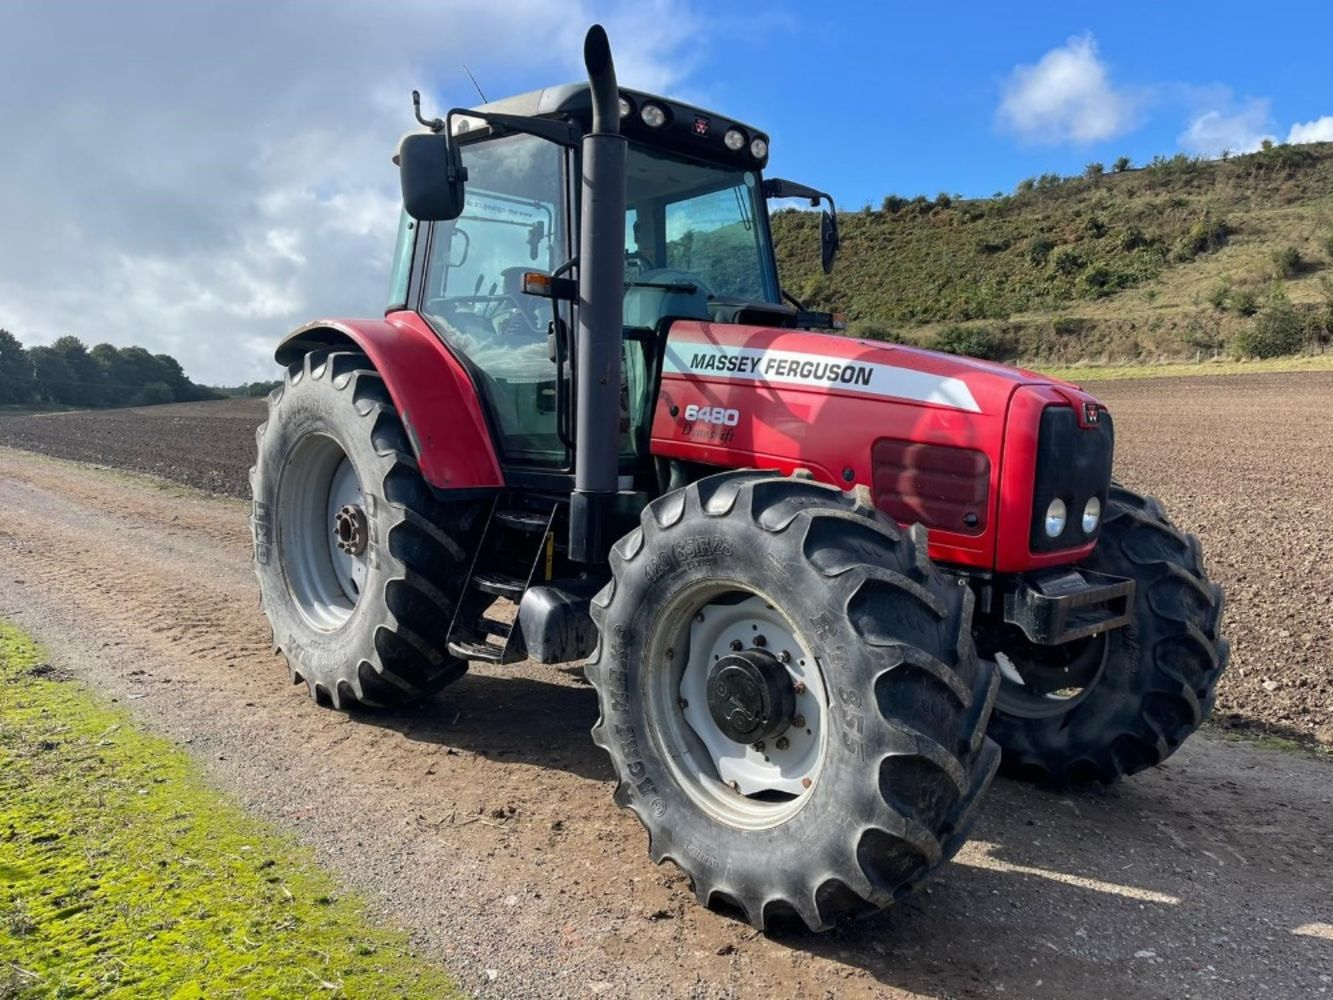 COLLECTIVE MACHINERY, PLANT, FODDER & VEHICLE SALE